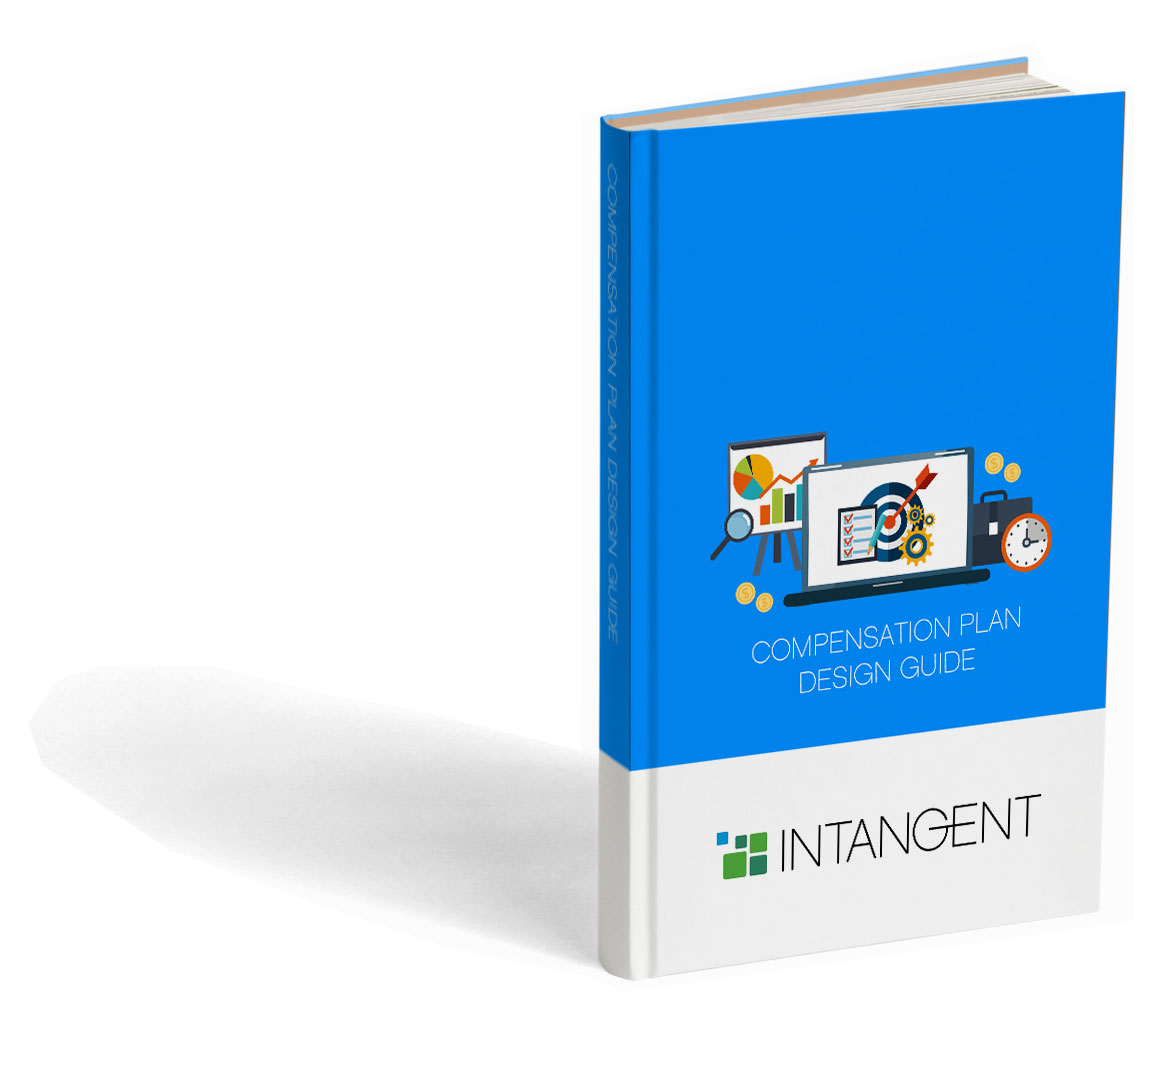 Intangent's Compensation Plan Design Guide